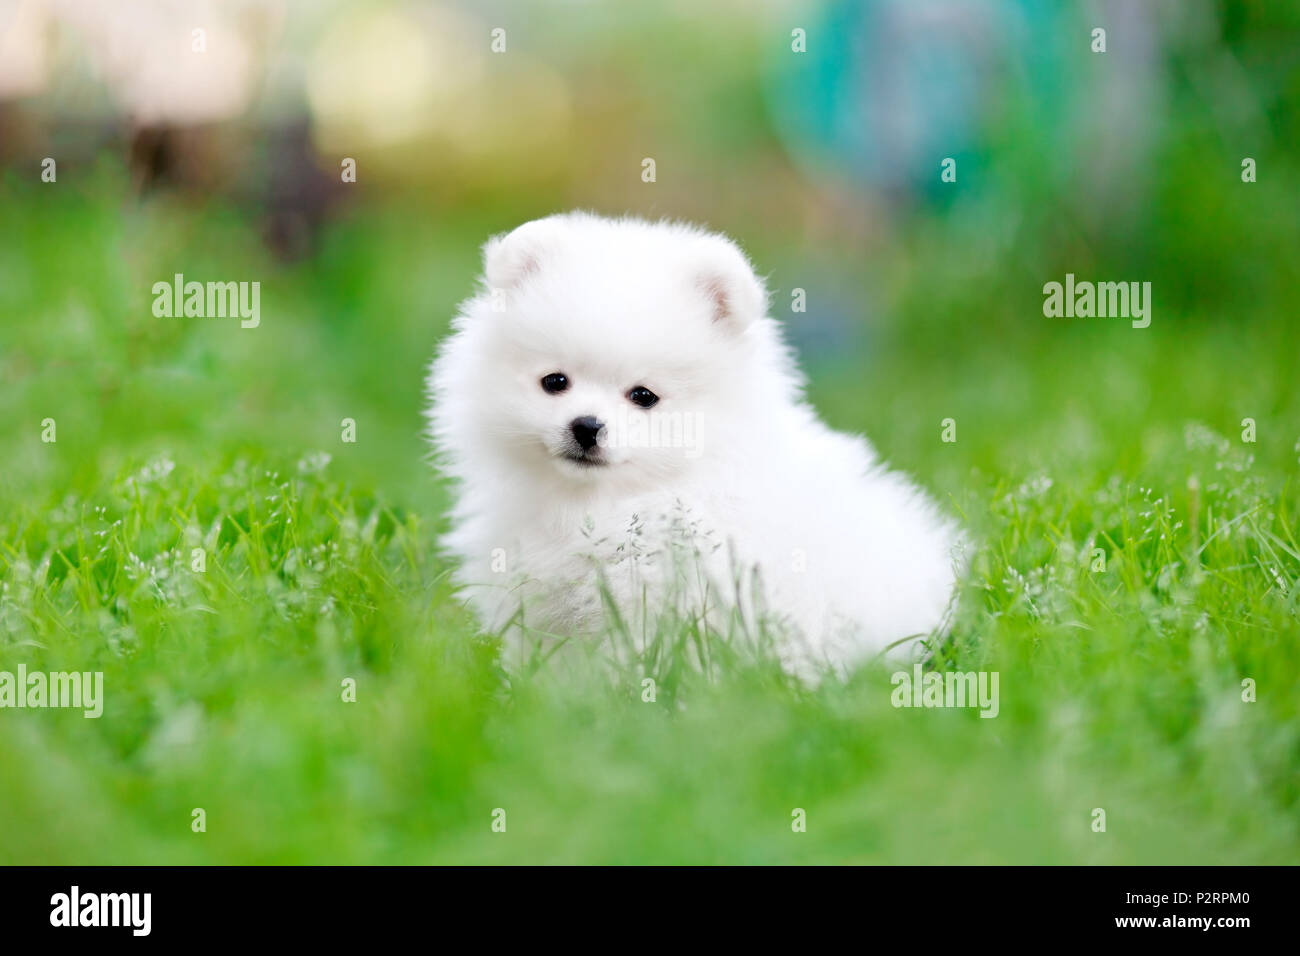 White Pomeranian High Resolution Stock Photography And Images Alamy